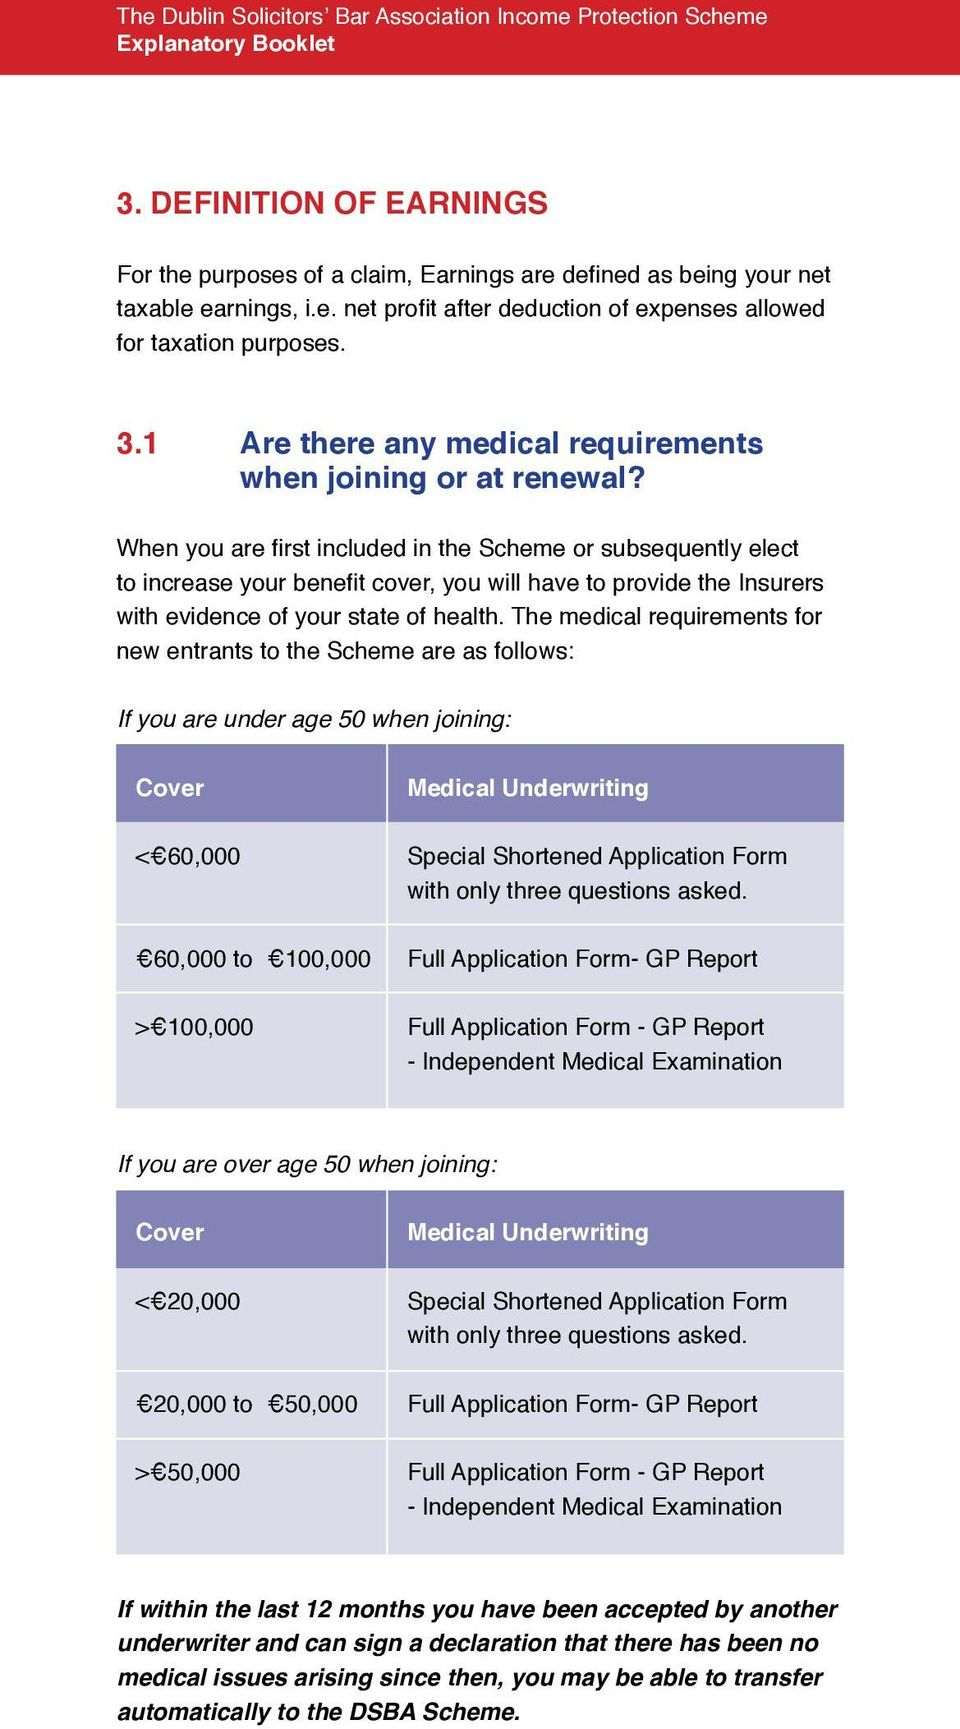 1 Are there any medical requirements when joining or at renewal?